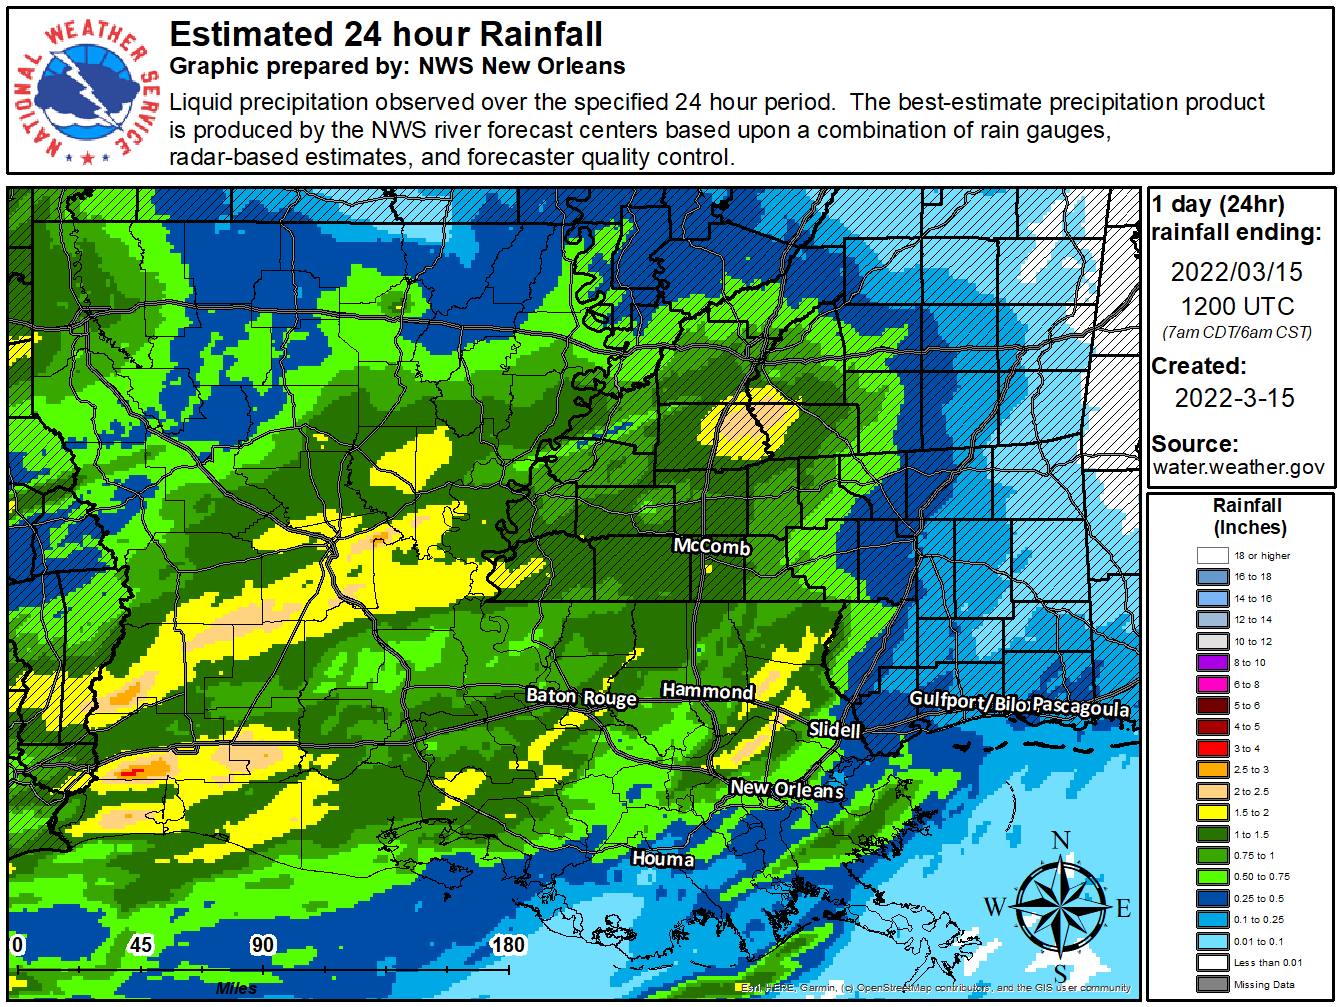 Image of 24-hr rainfall for Louisiana.